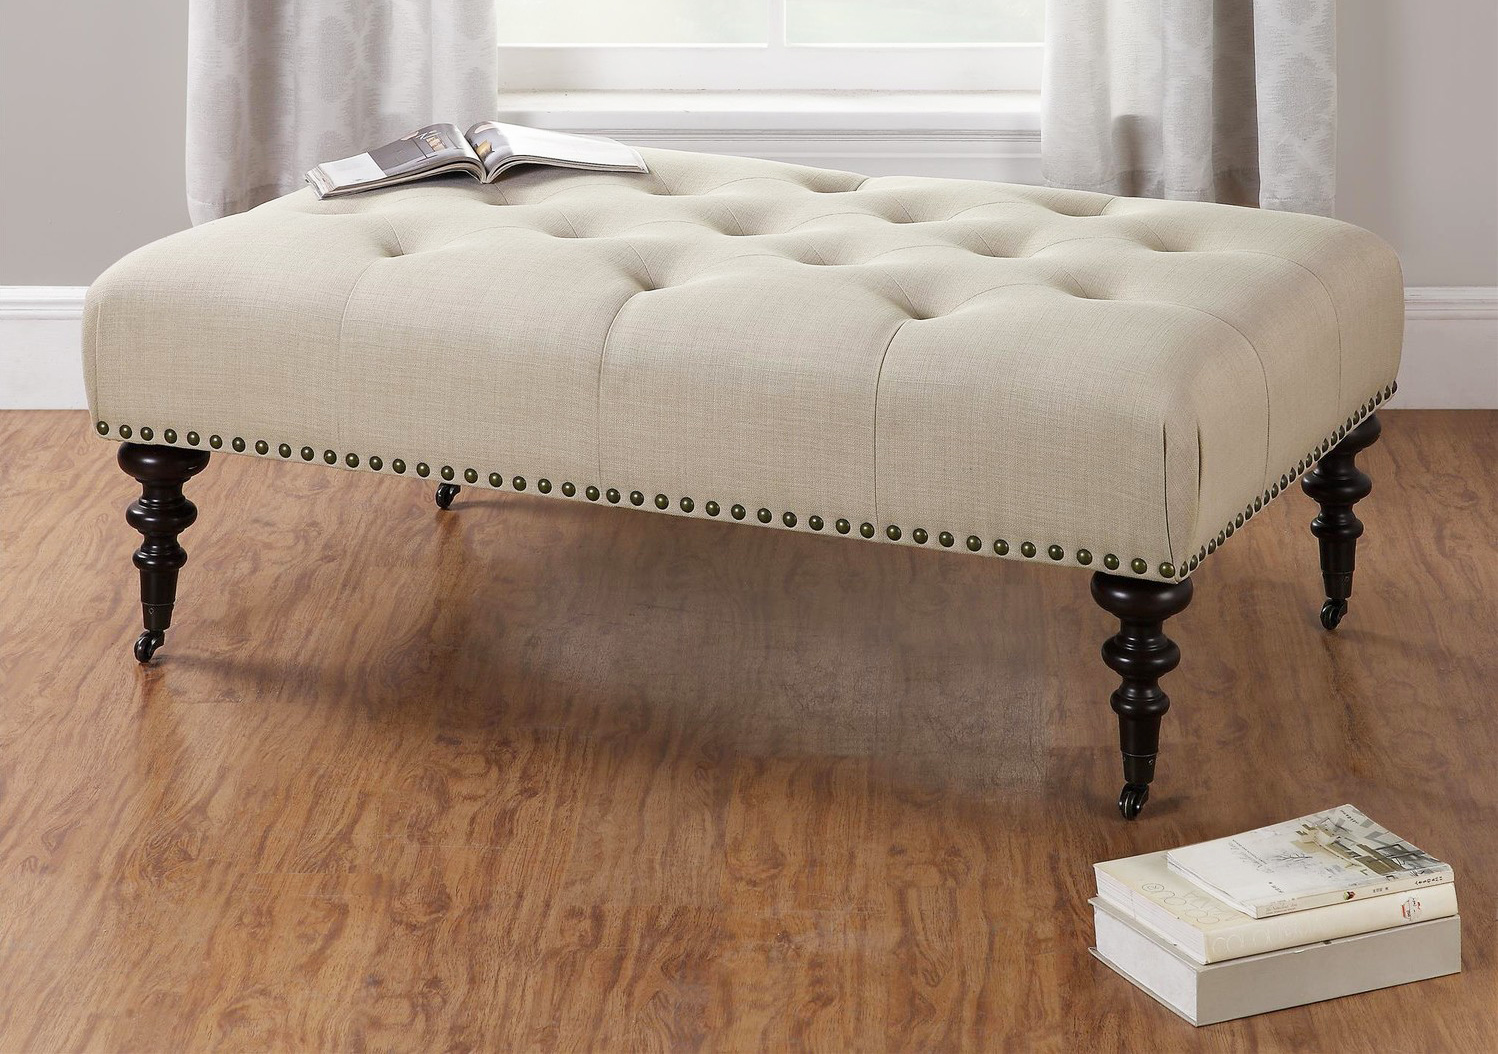 Round Tufted Storage Ottoman Coffee Table